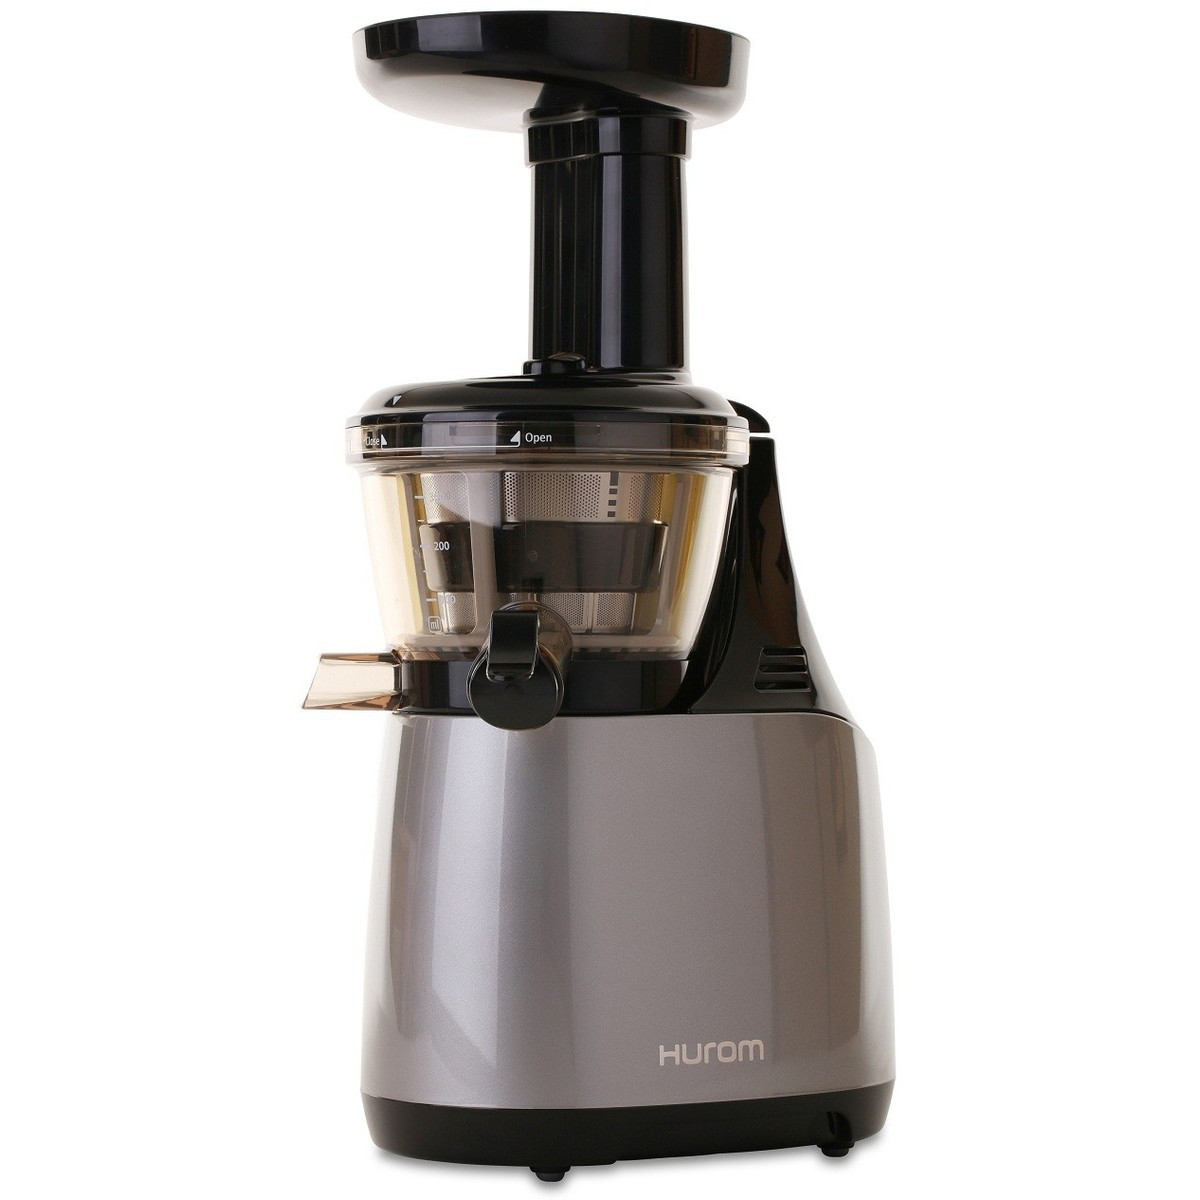 Slow Juicer Ie : Hurom Slow Juicer HU-500 HE Series - Juicers.ie Ireland s No 1 Juicers website